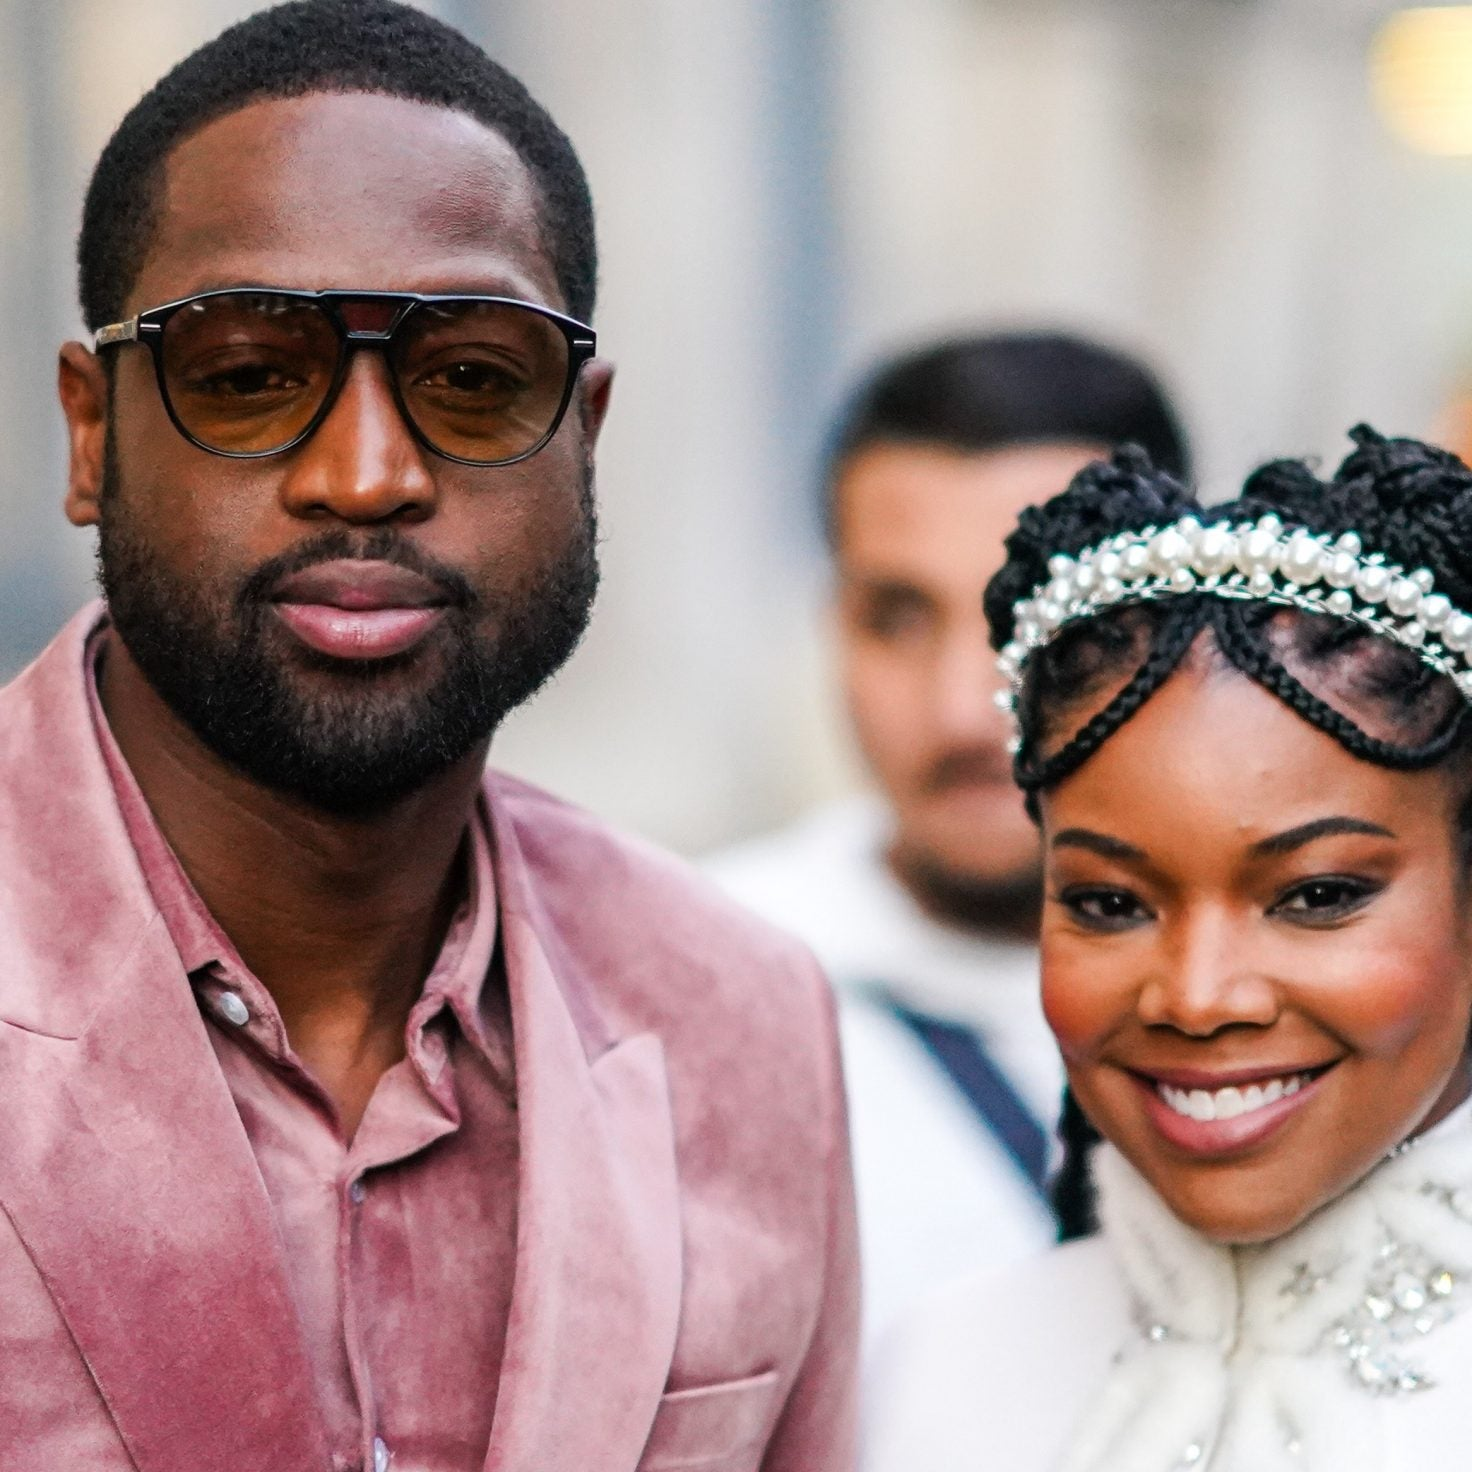 Gabrielle Union And Dwyane Wade Make A Stop At Paris Fashion Week For #WadeWorldTour